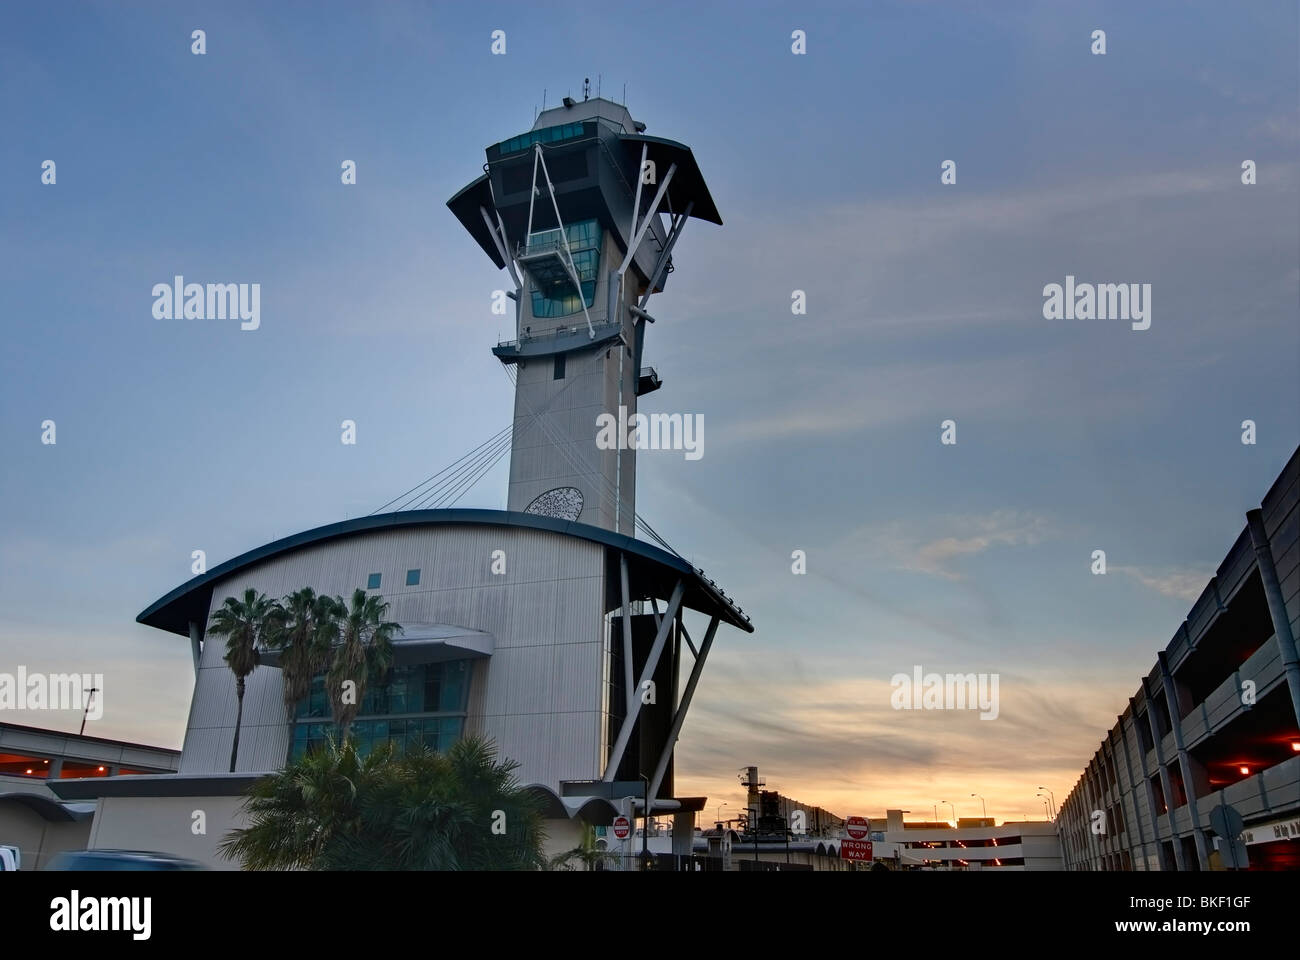 Los Angeles International Airport's air traffic control tower designed by architect Kate Diamond. - Stock Image